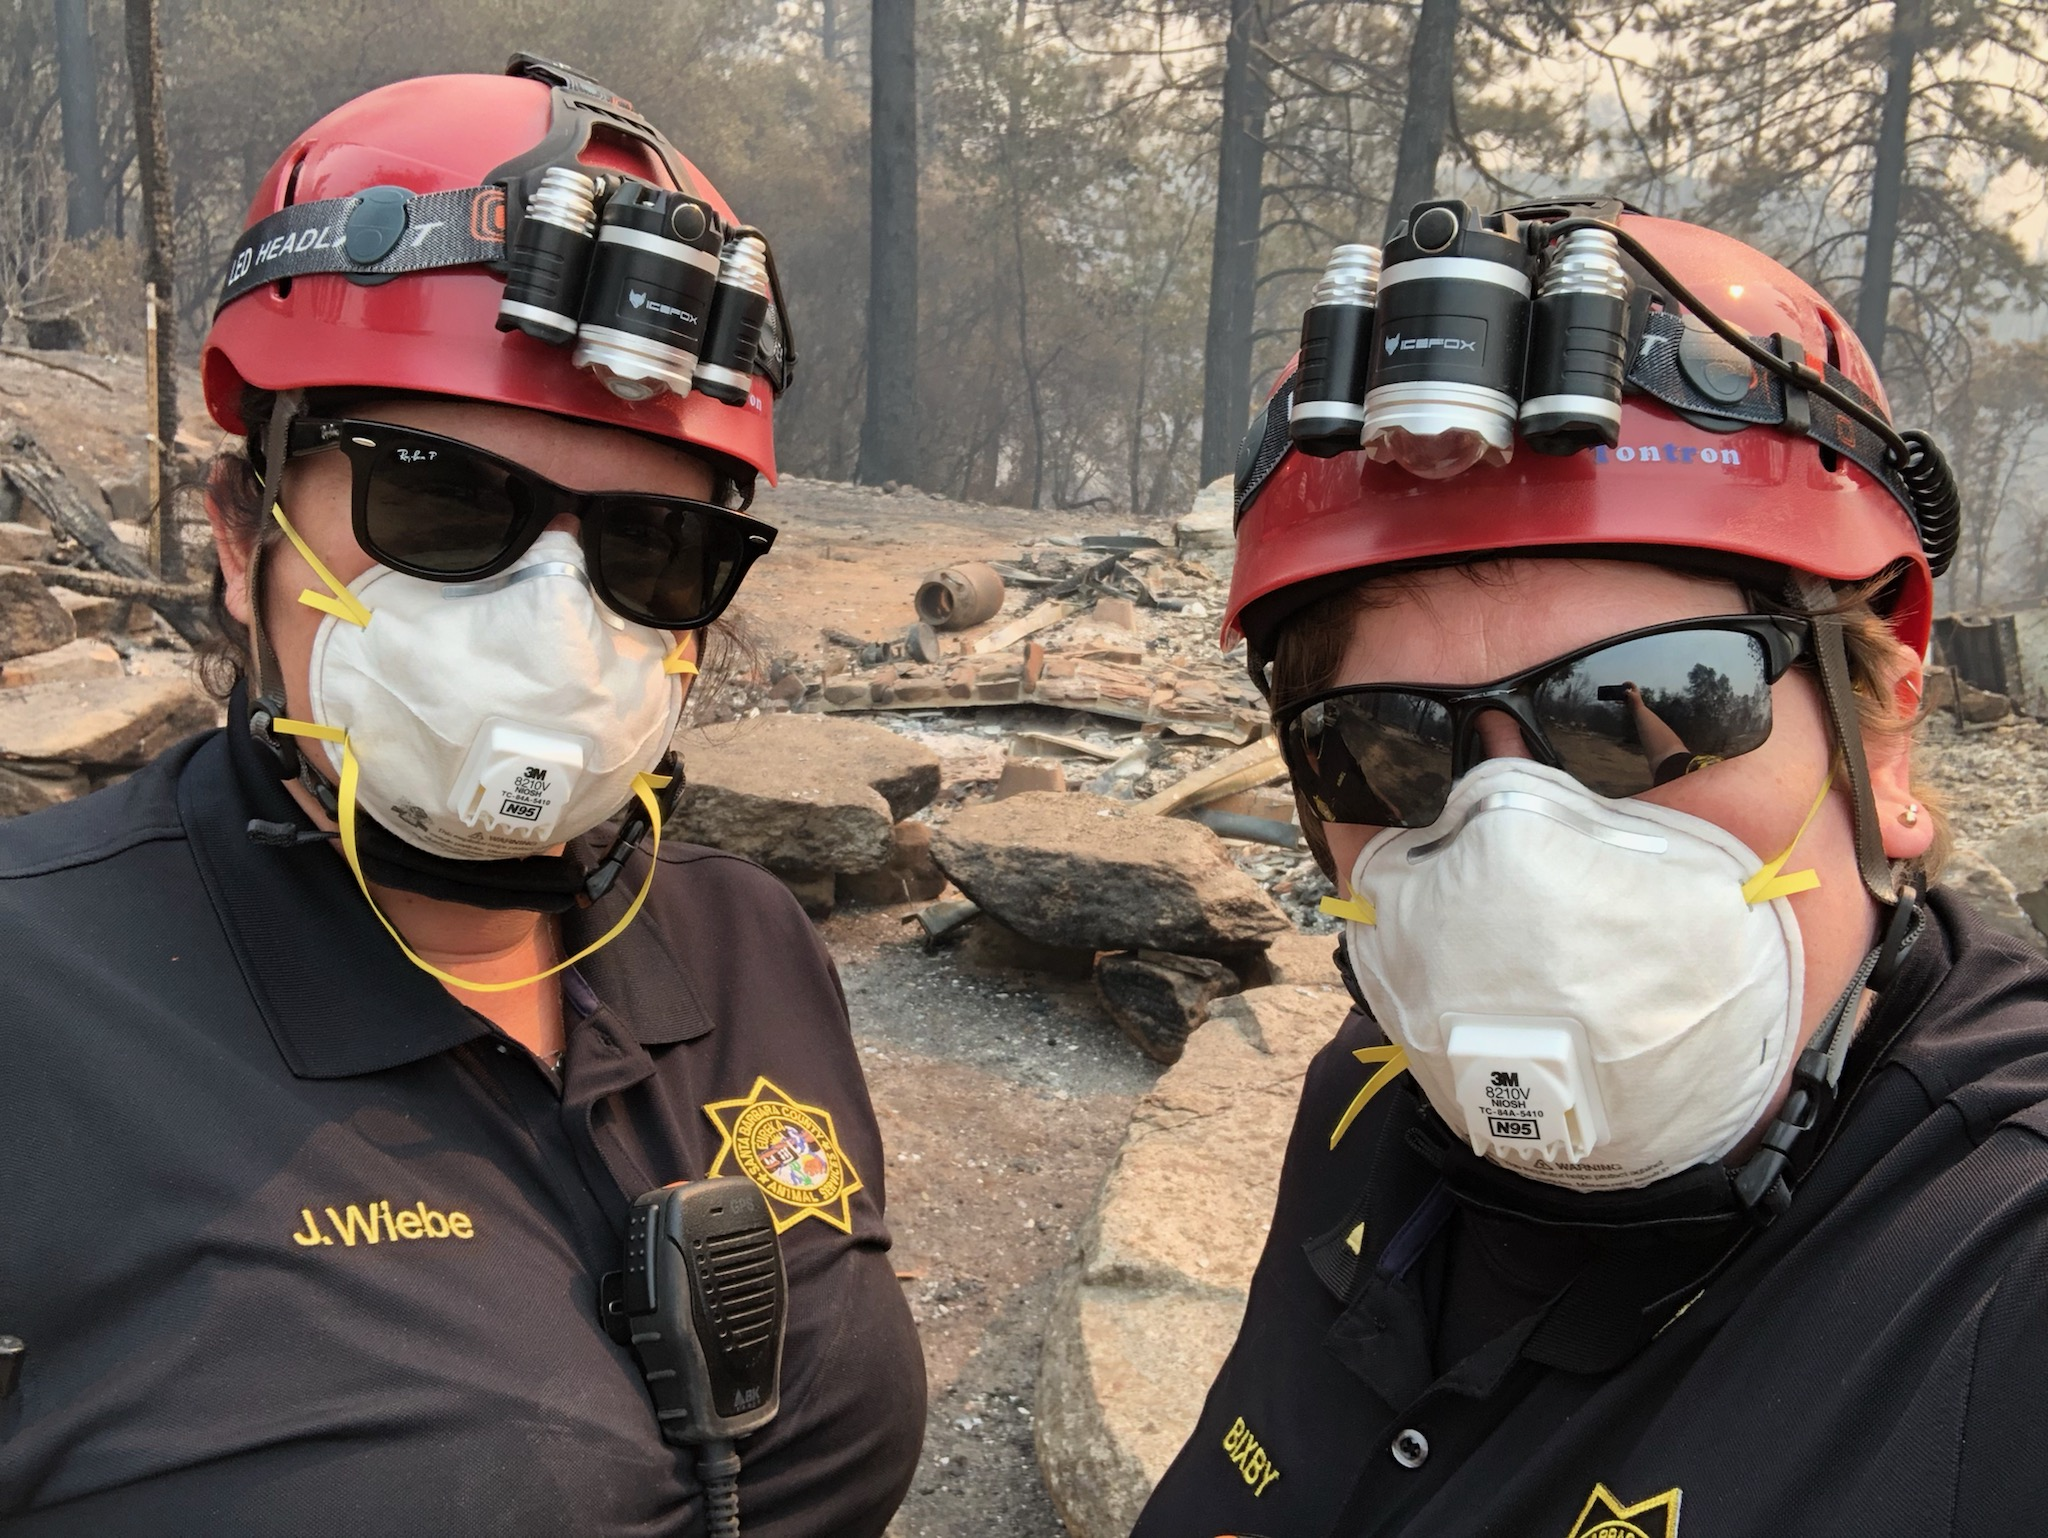 First responders from Santa Barbara Co. Animal Services rescue animals in North Complex Fire